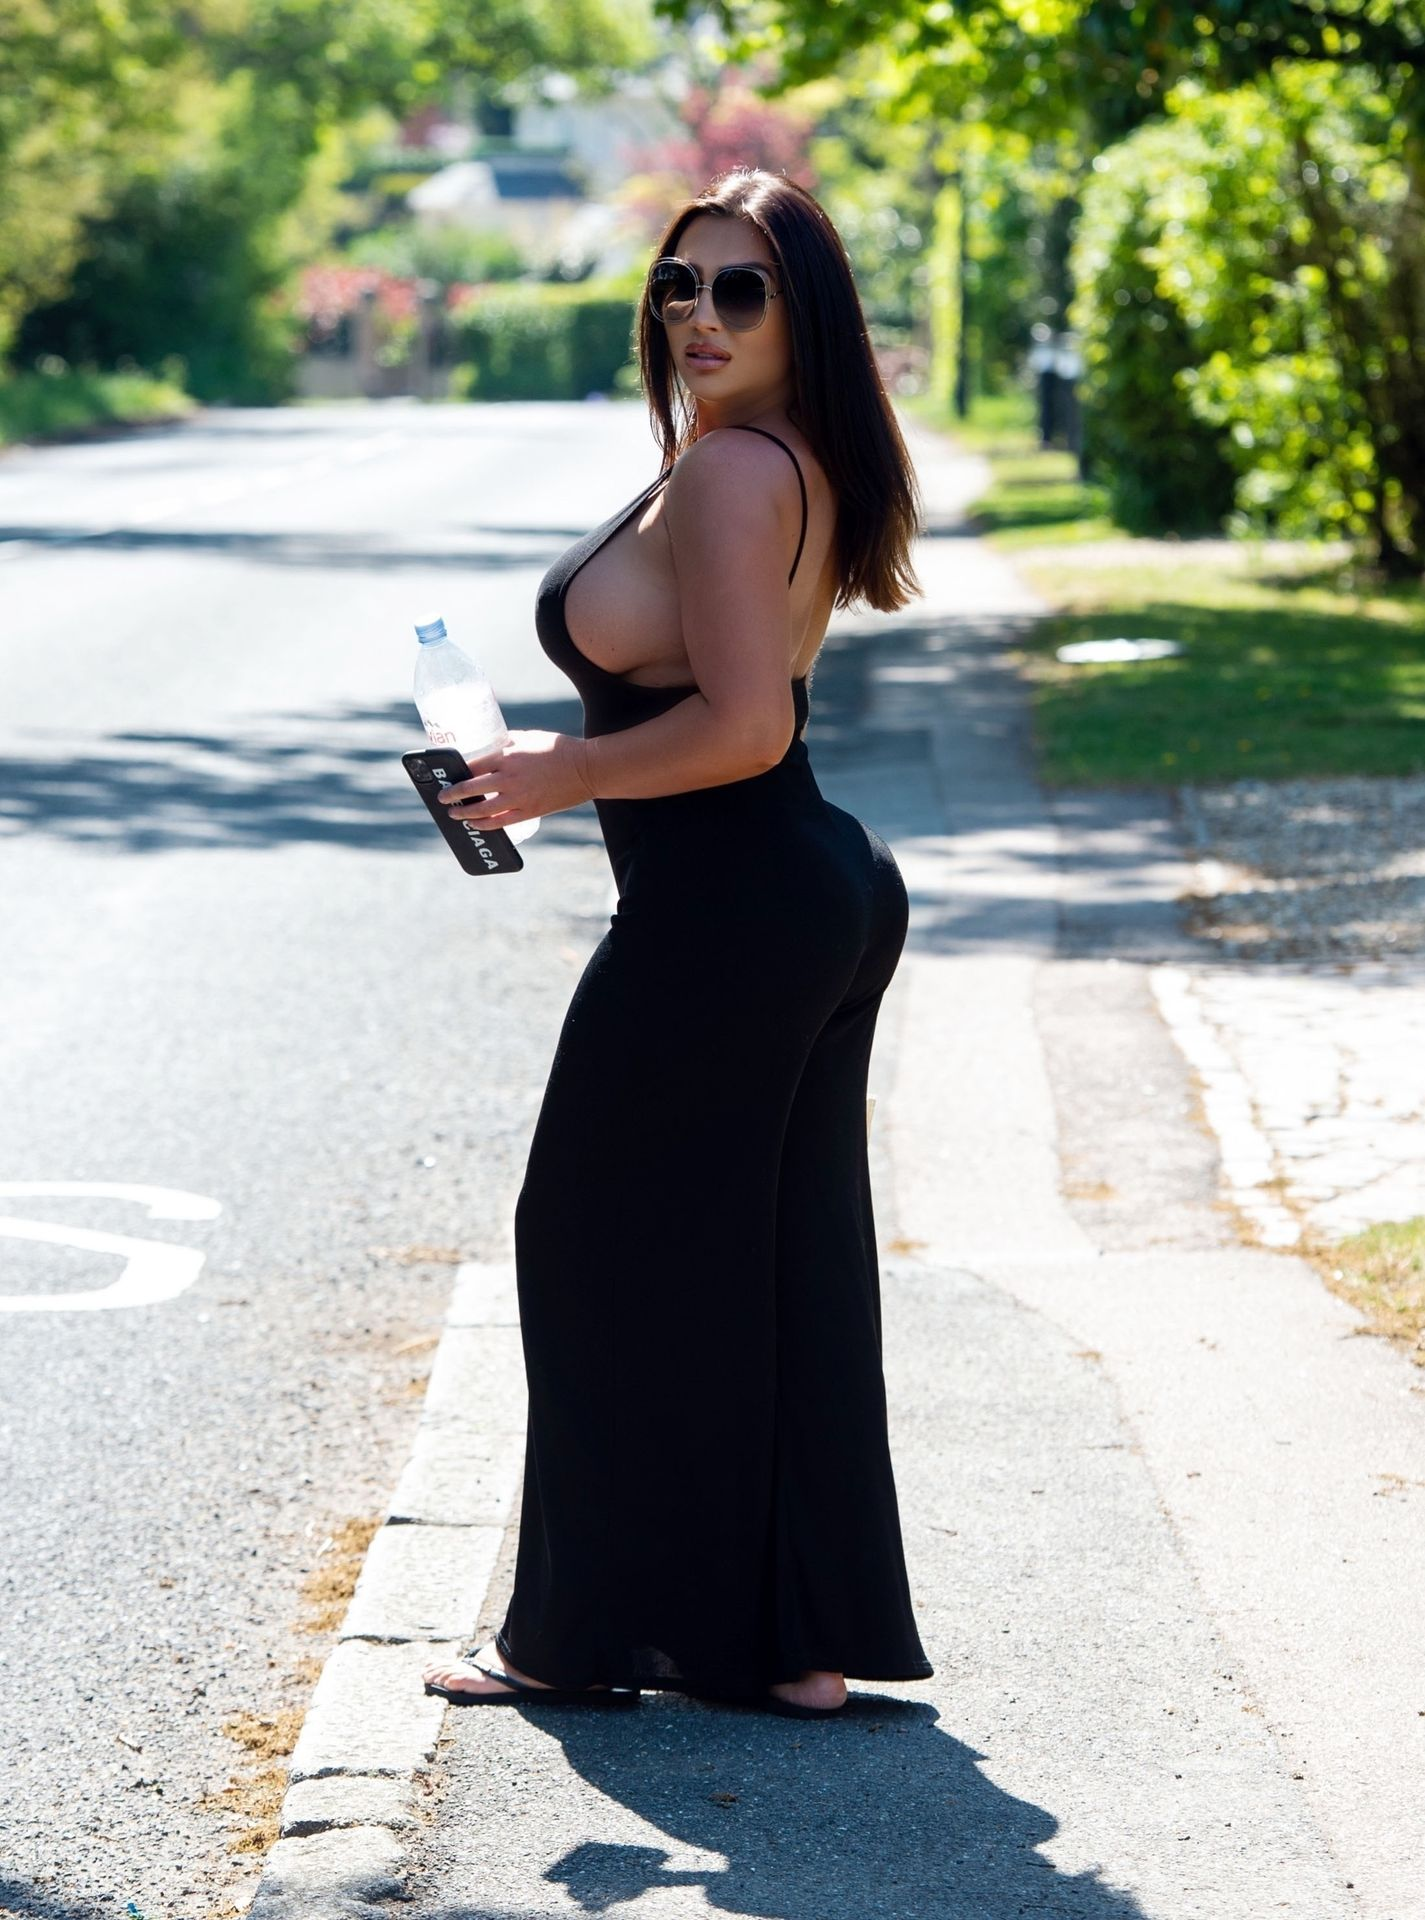 Lauren Goodger Sideboob in Essex